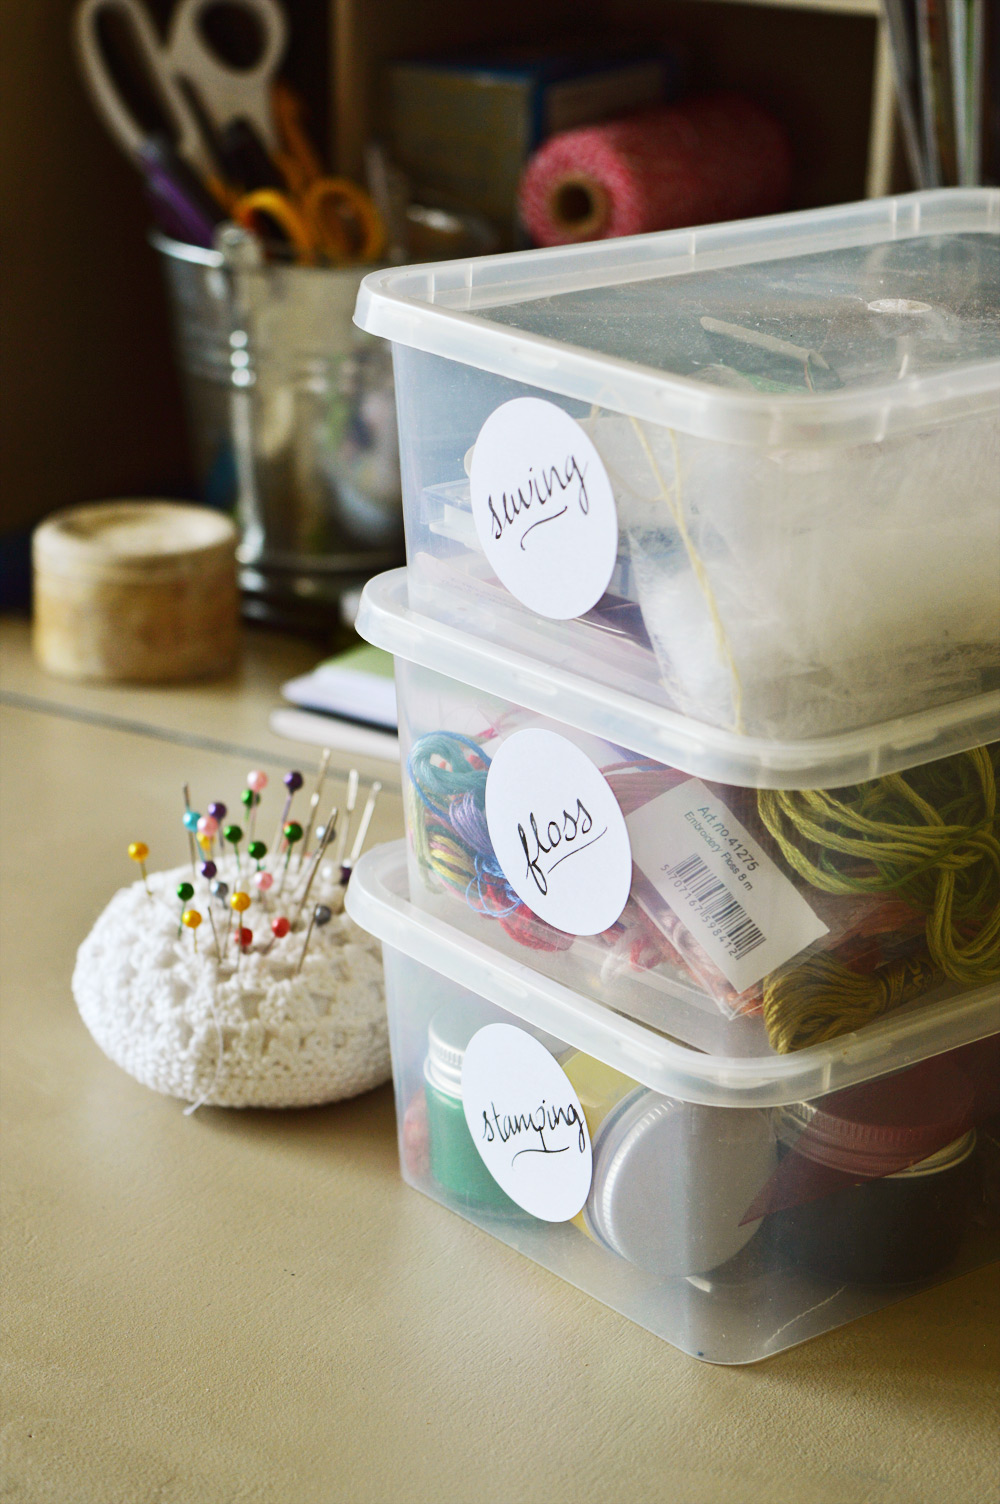 Organising craft materials